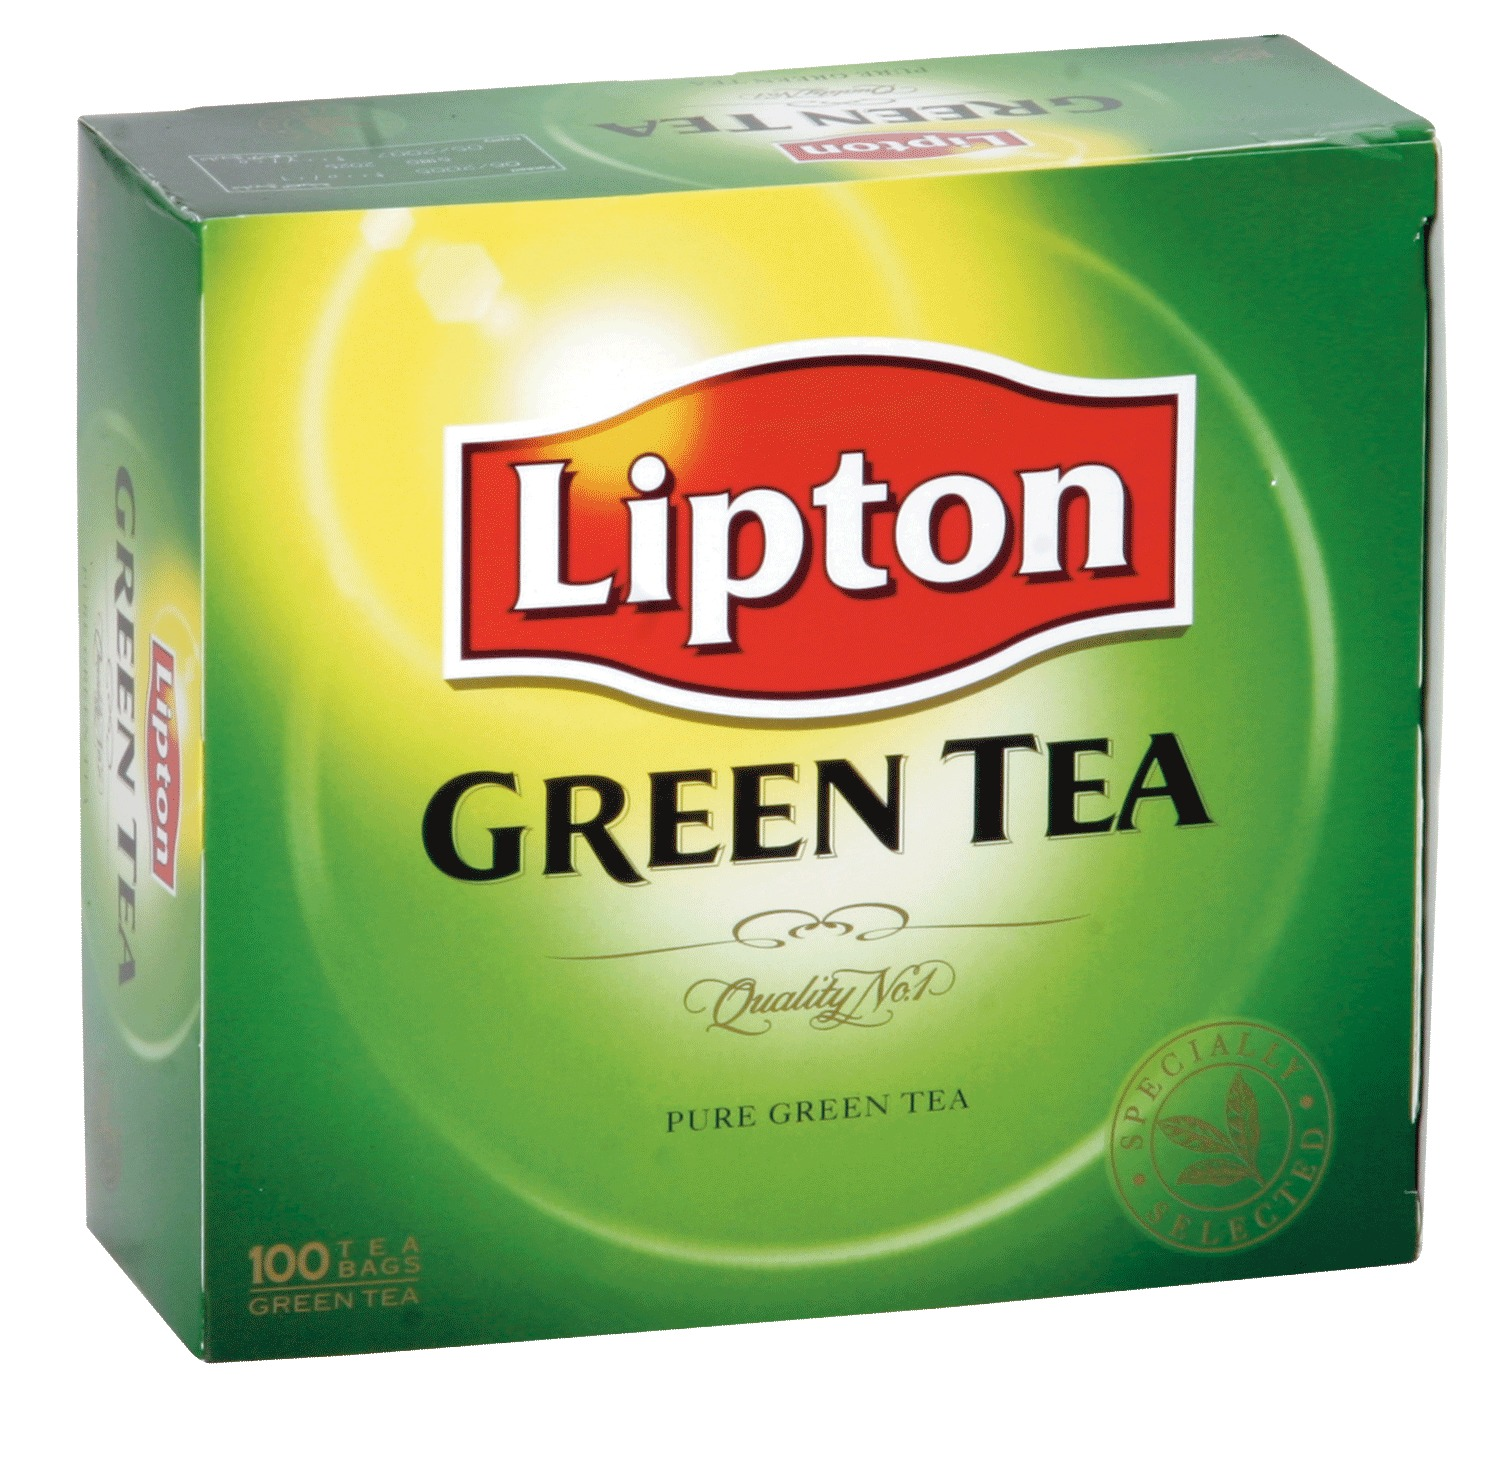 lipton pure green tea bags reviews in tea familyrated